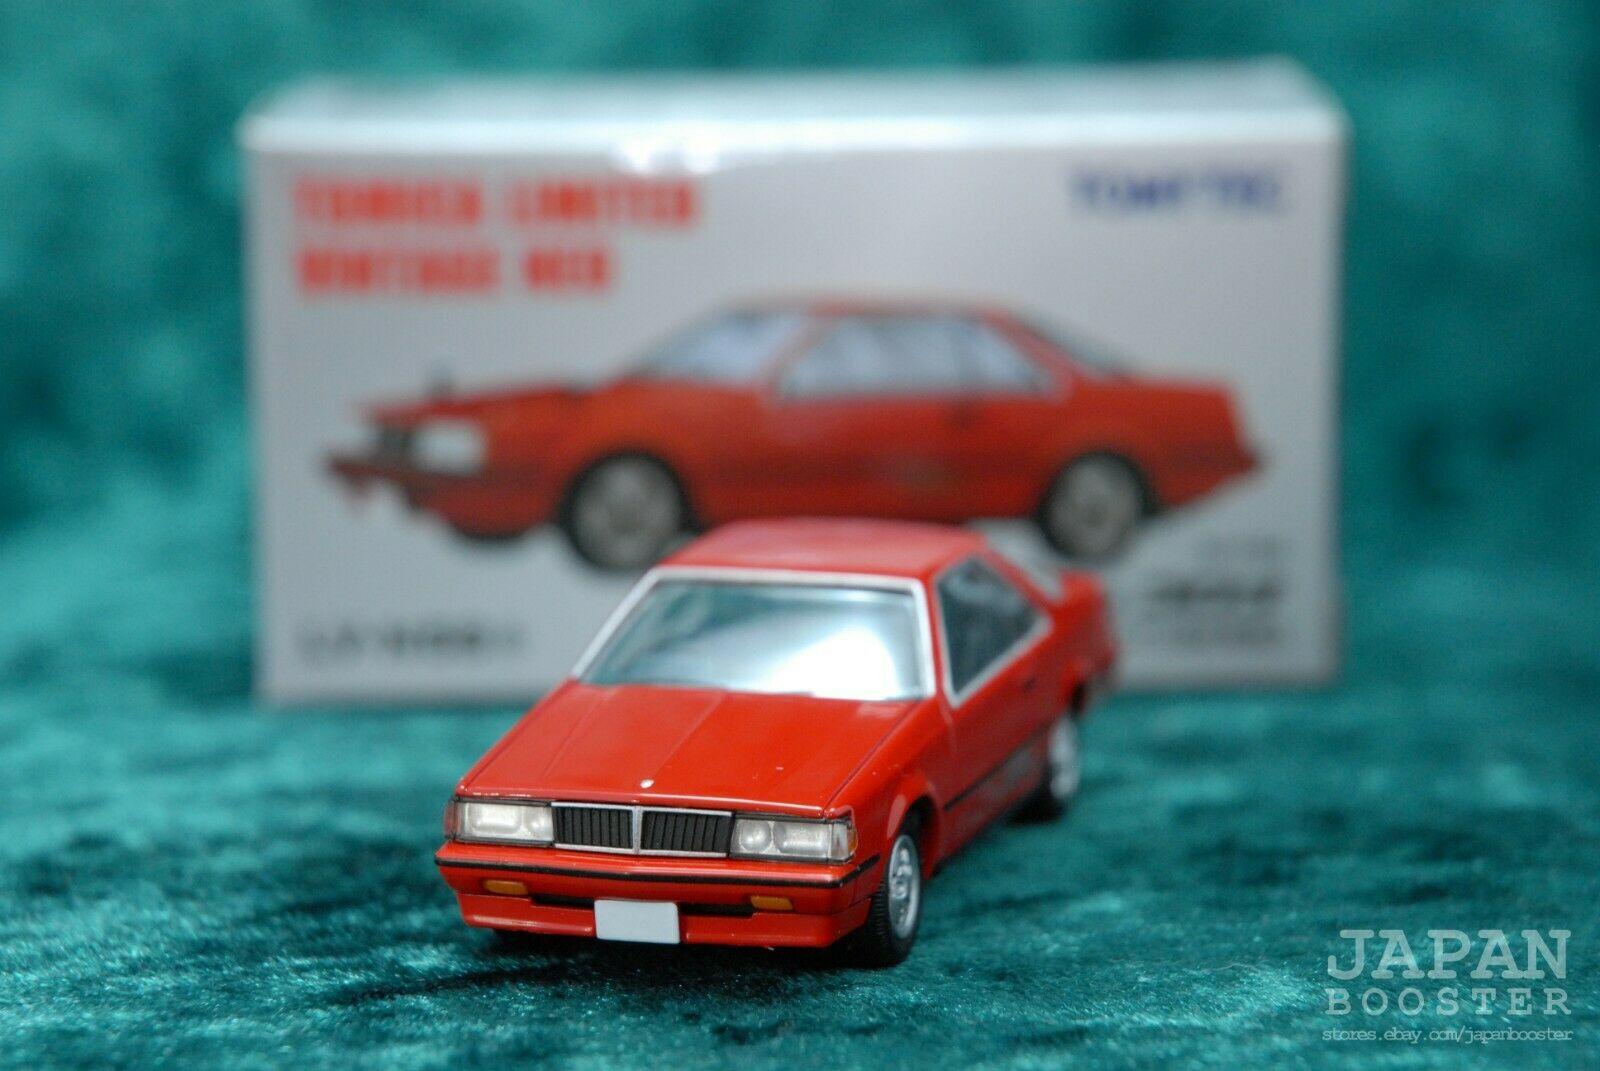 Tomytec Tomy Tomica Limited Lv N58a Toyota Corona 1800 Gt T 1 64 For Sale Online Ebay